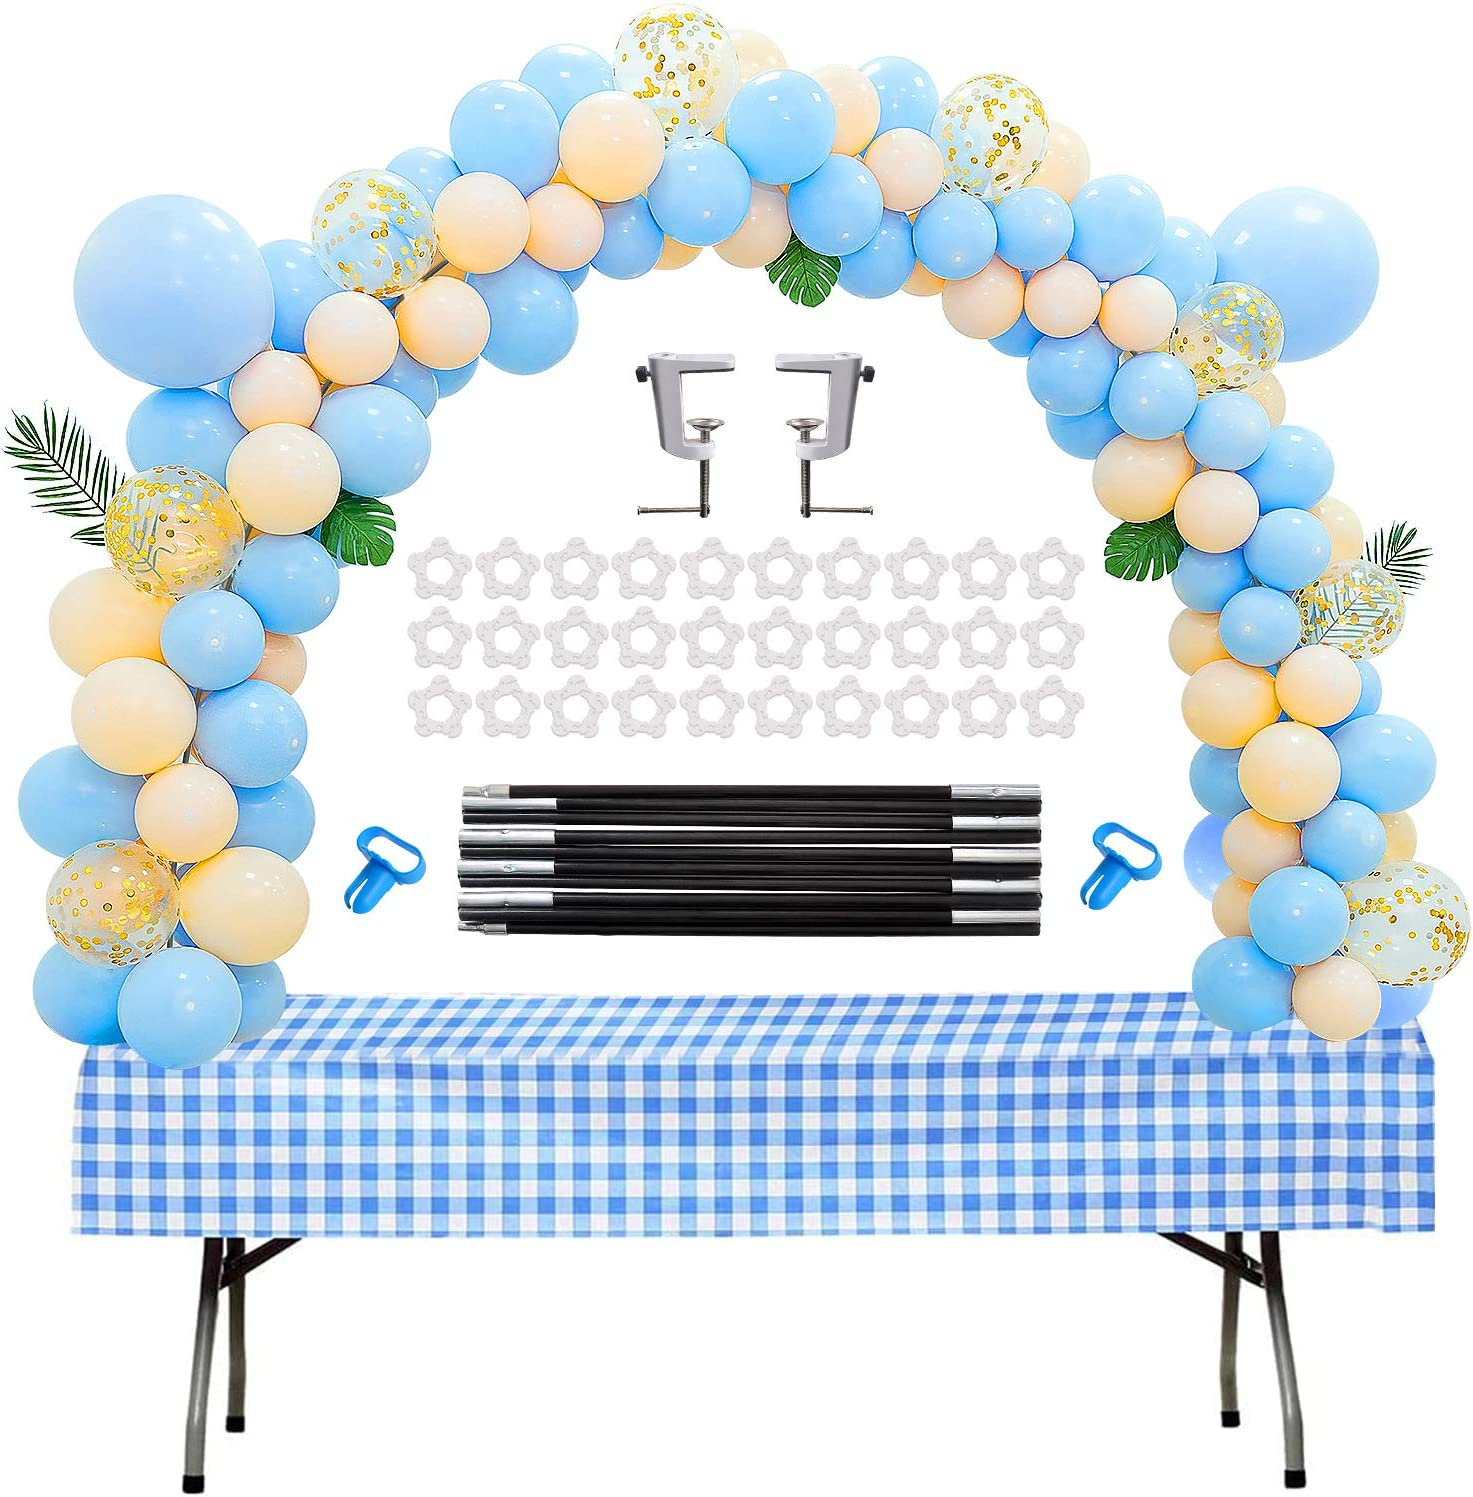 Table Balloon Arch Kit Adjustable for Baby Shower, Birthday, Wedding, Festival, Graduation Decorations and DIY Event Party Supplies